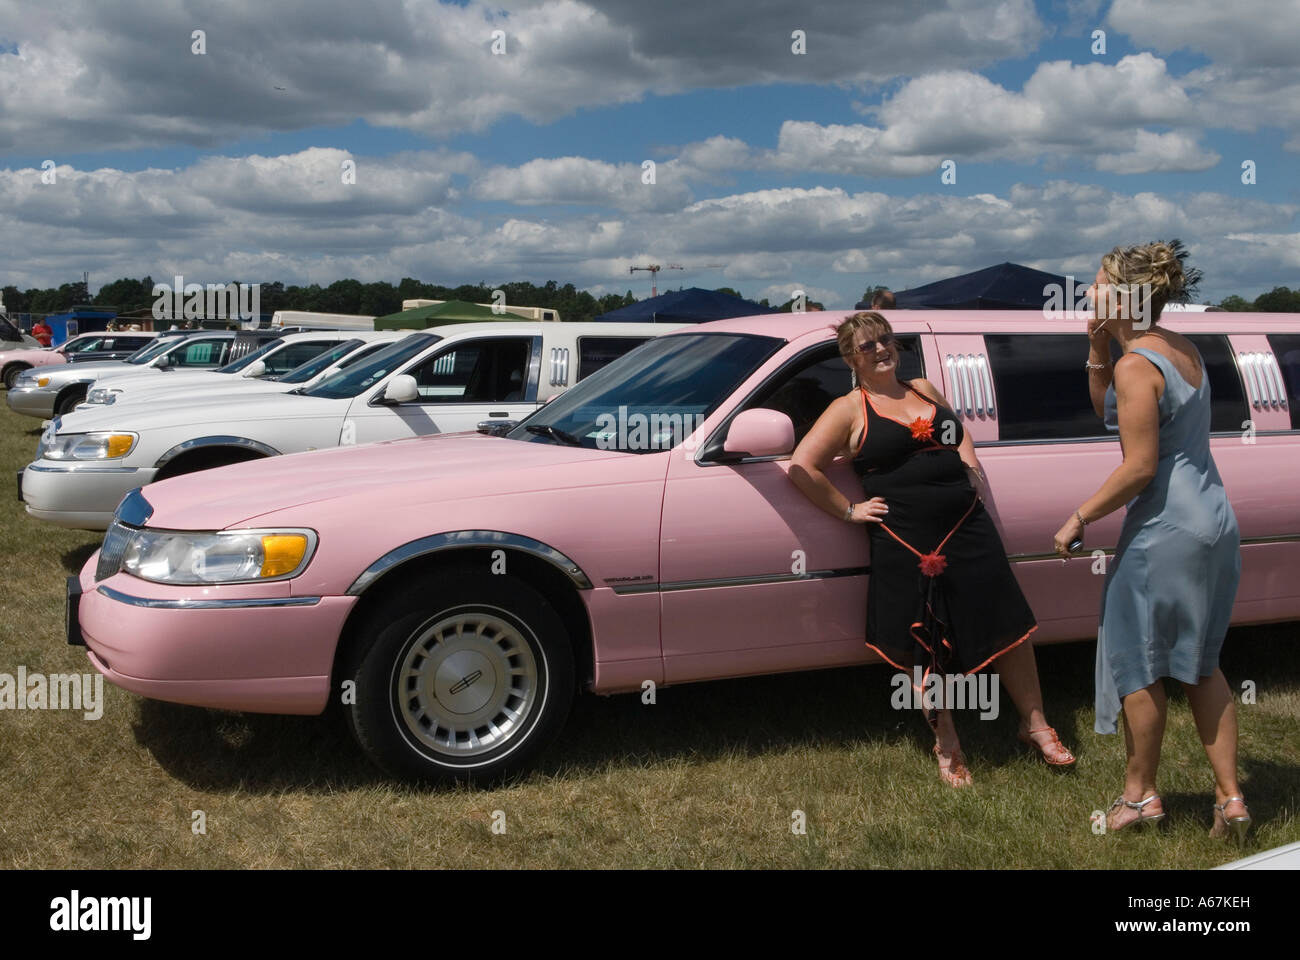 Pink Stretched Limo Car Park The Heath Horse Racing At Royal